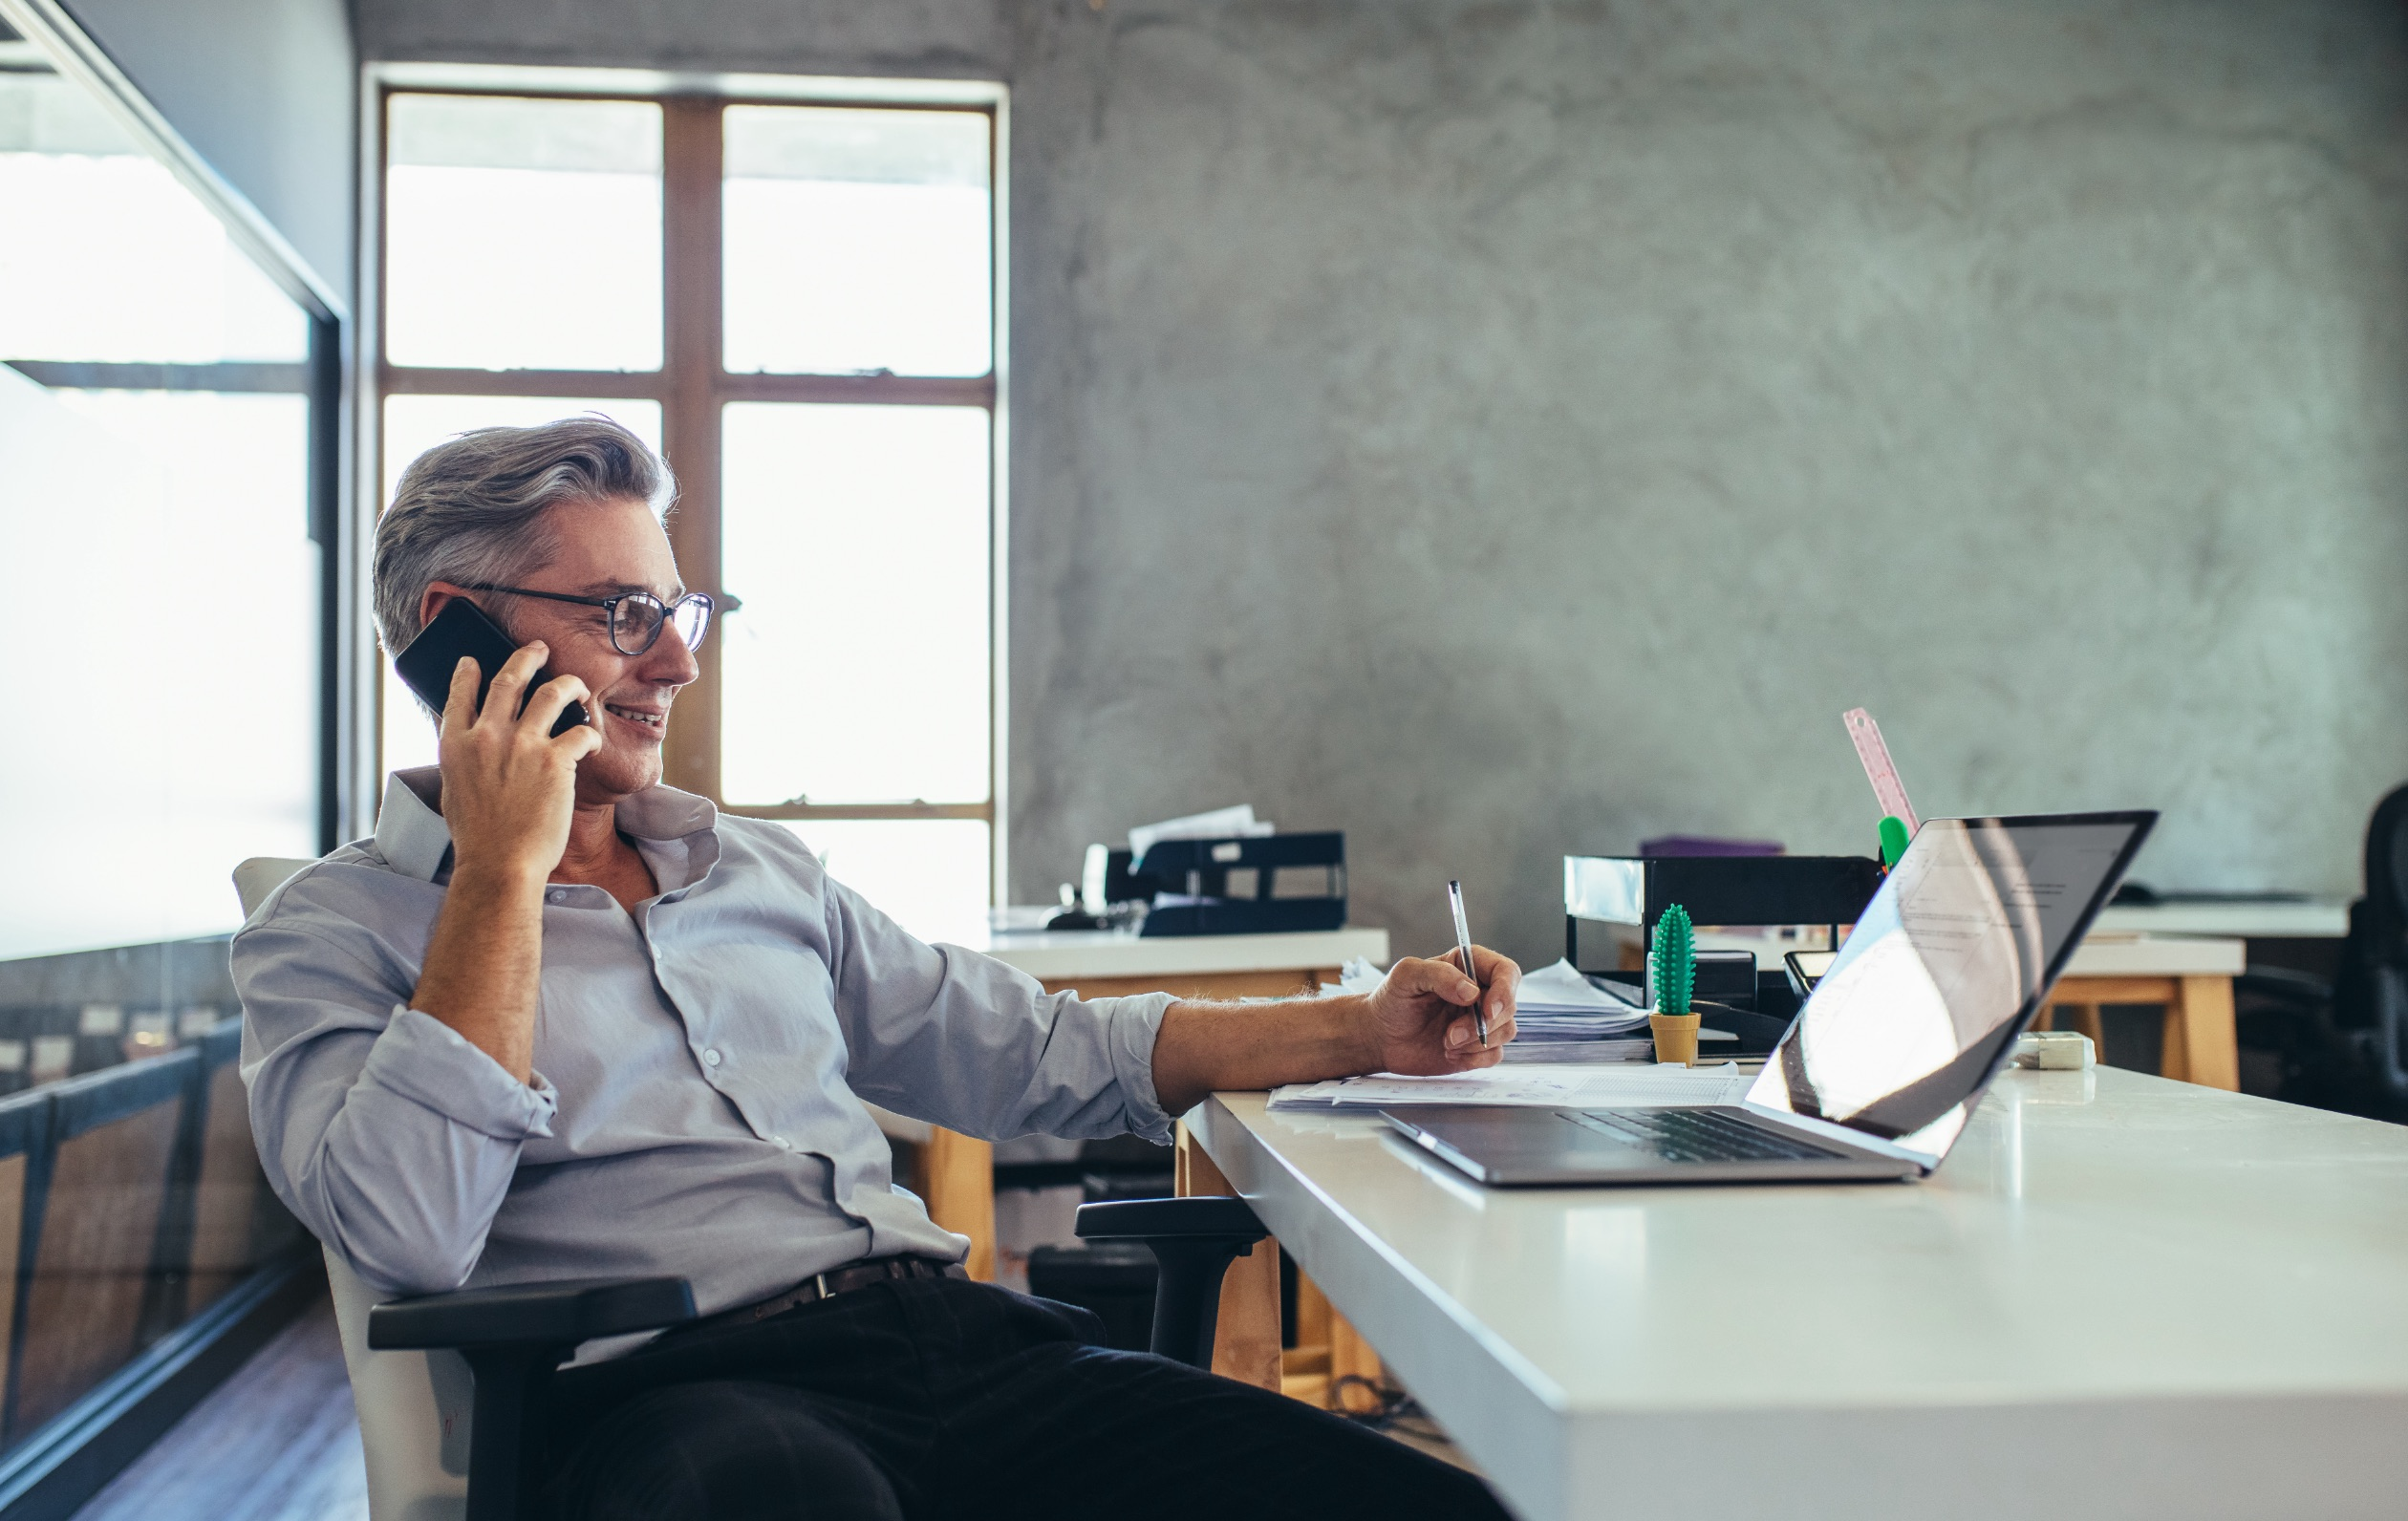 Business man sitting at a desk talking on the phone